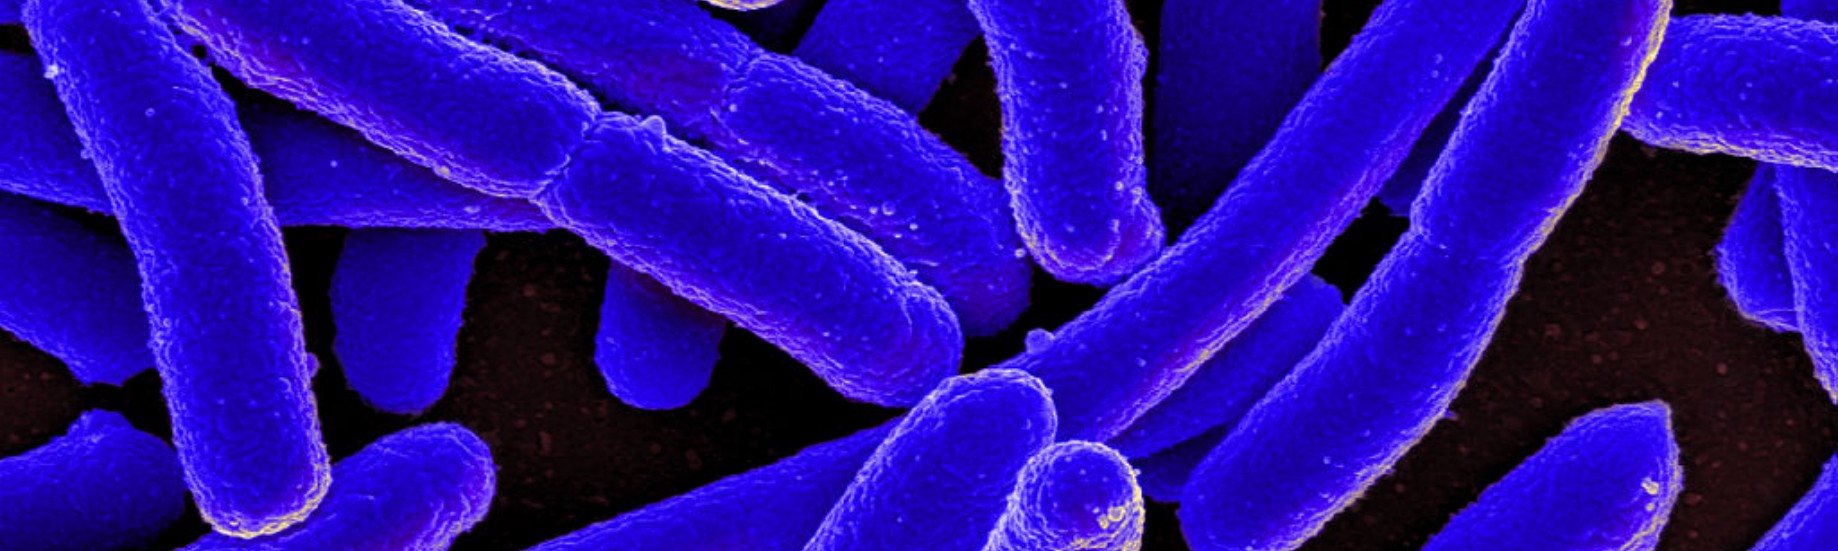 Bacteria are always at war. Understanding their use of weapons may ...